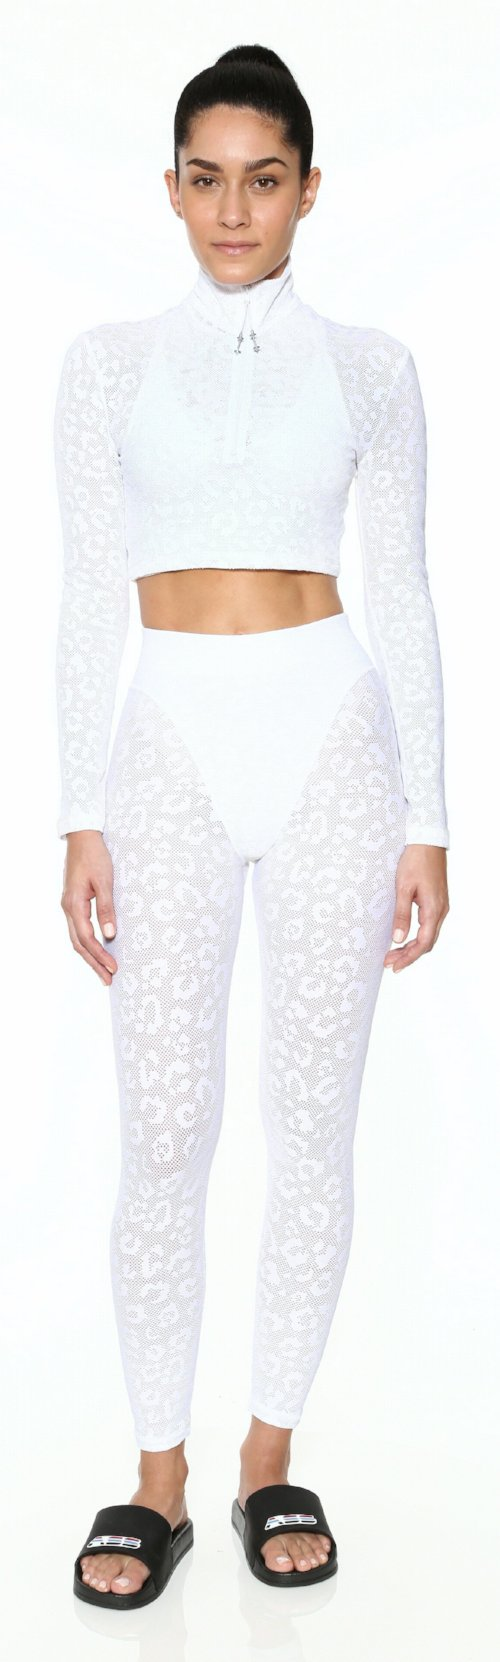 leopard bra top white long sleeve adam selman activewear workout work out clothes